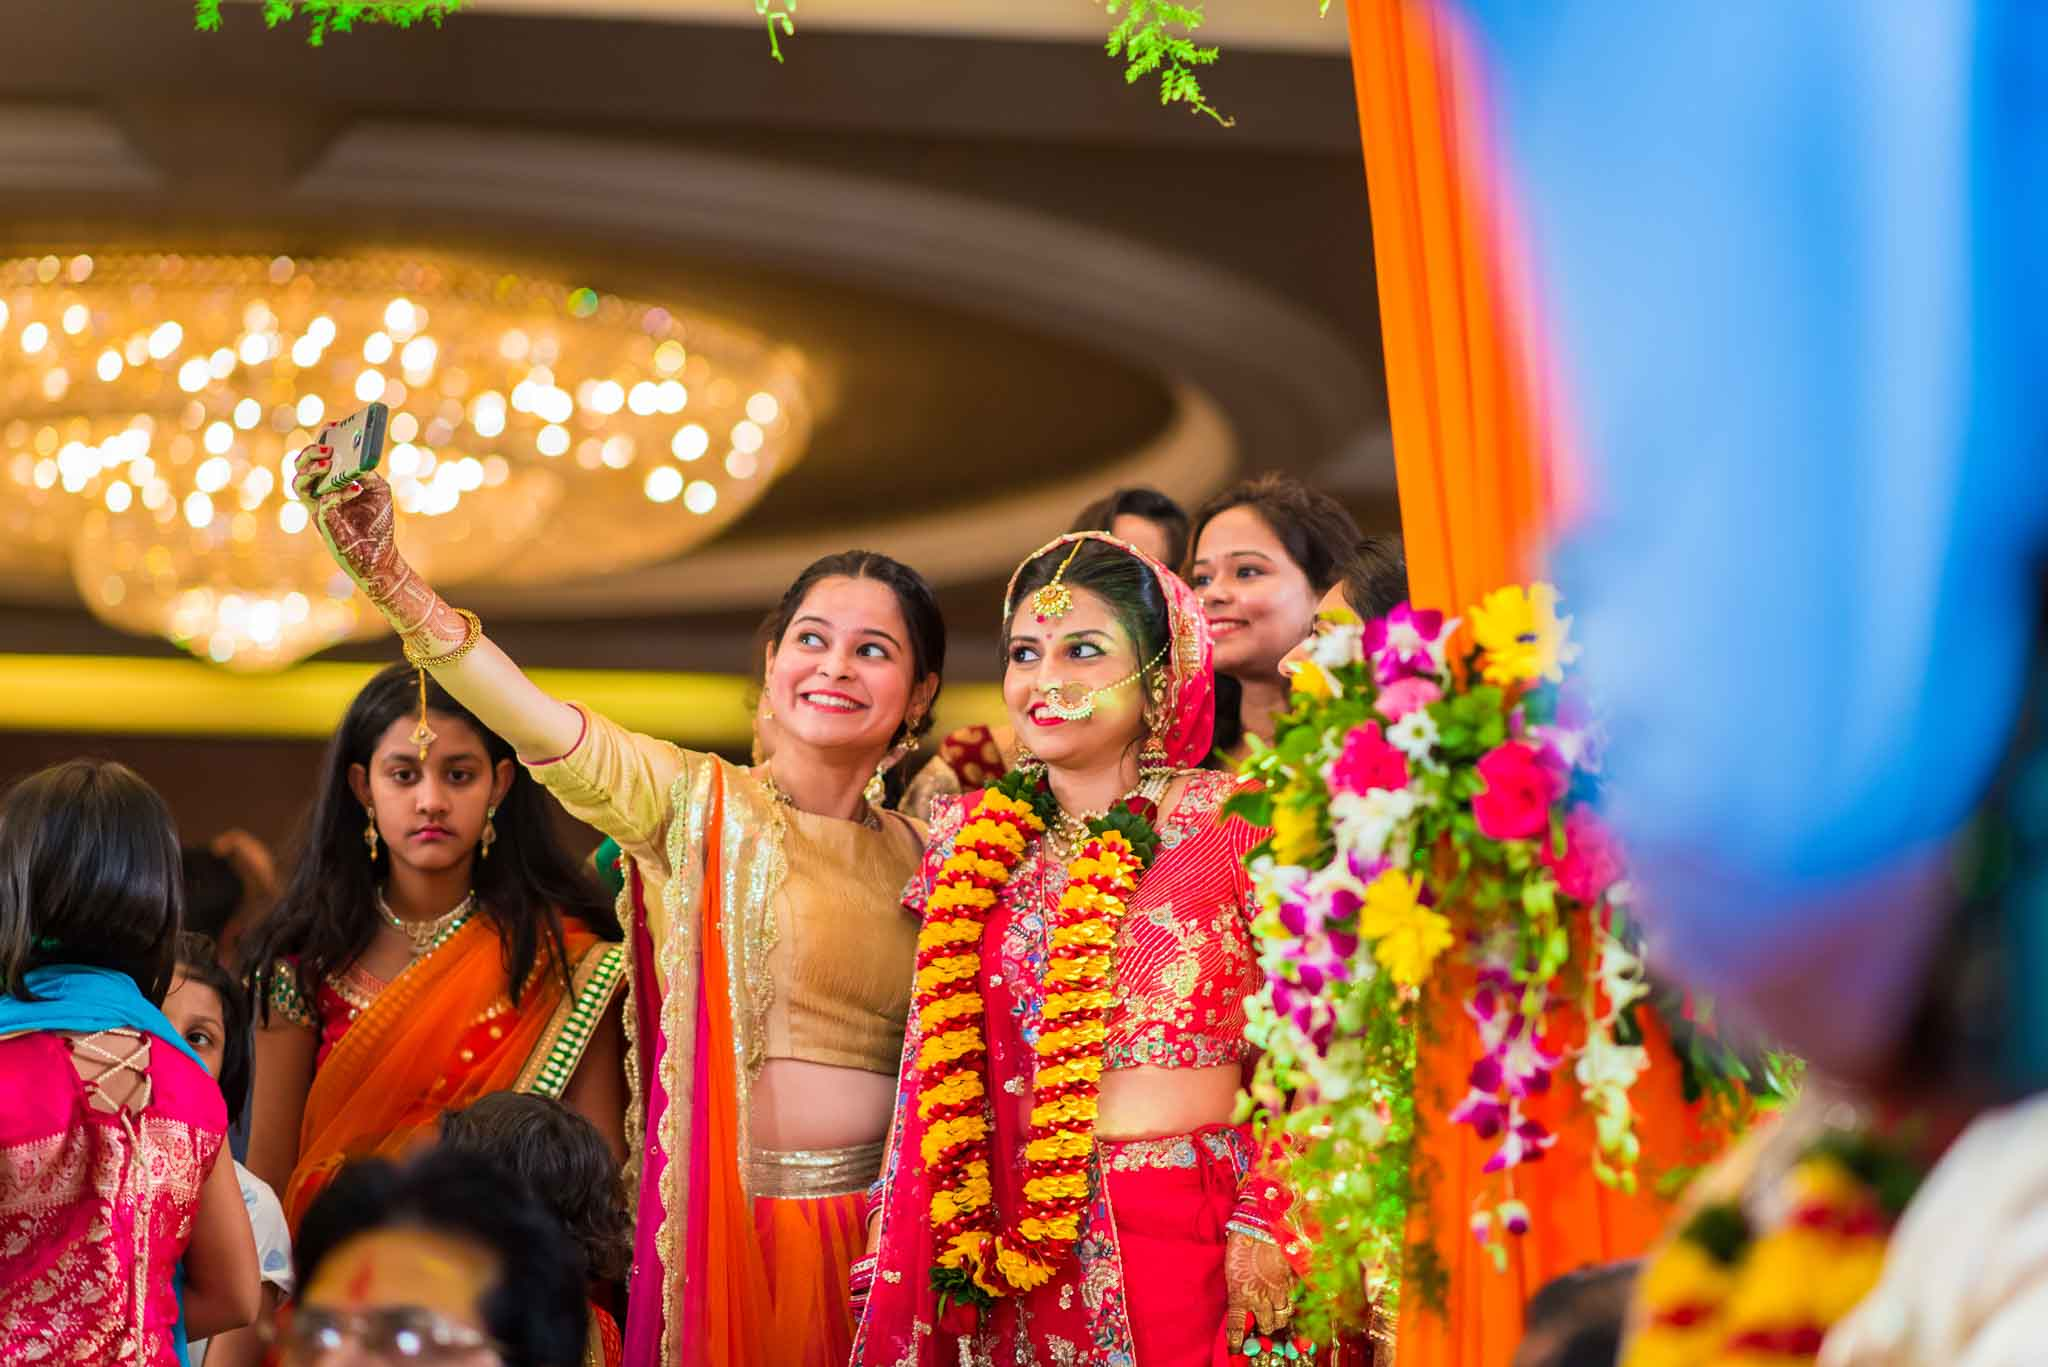 Candid-Wedding-Photography-Nagpur-Destination-74